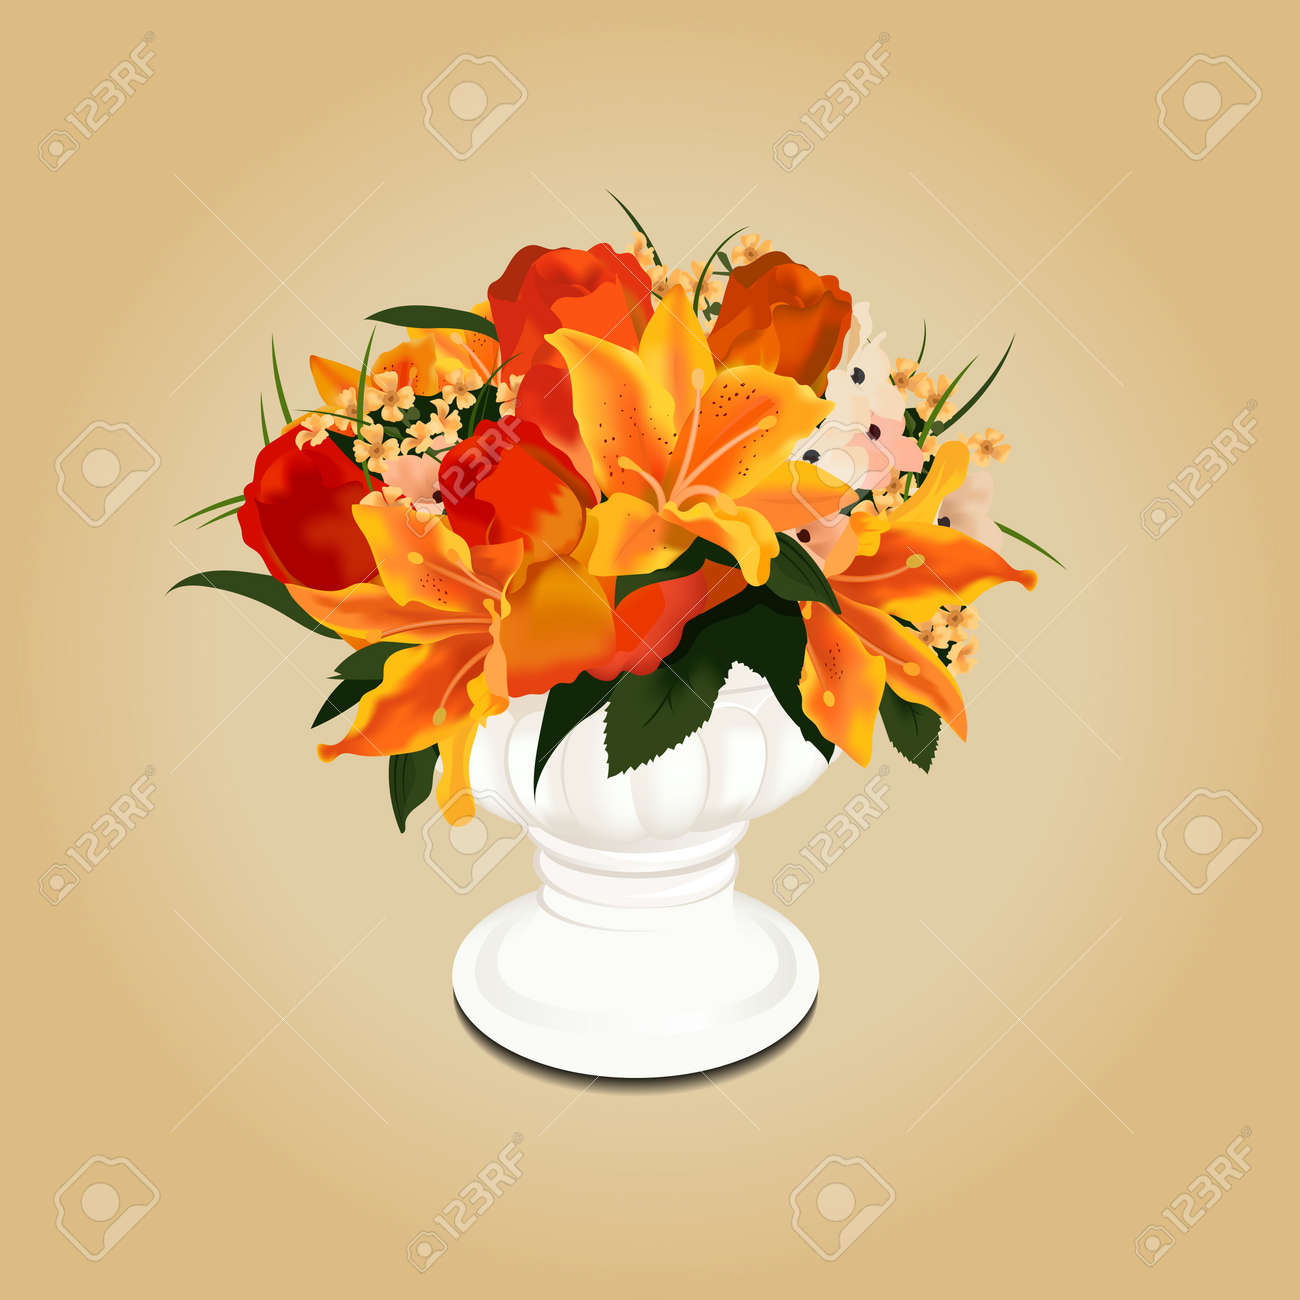 Flower Bouquet In Vase Royalty Free Cliparts, Vectors, And Stock ...